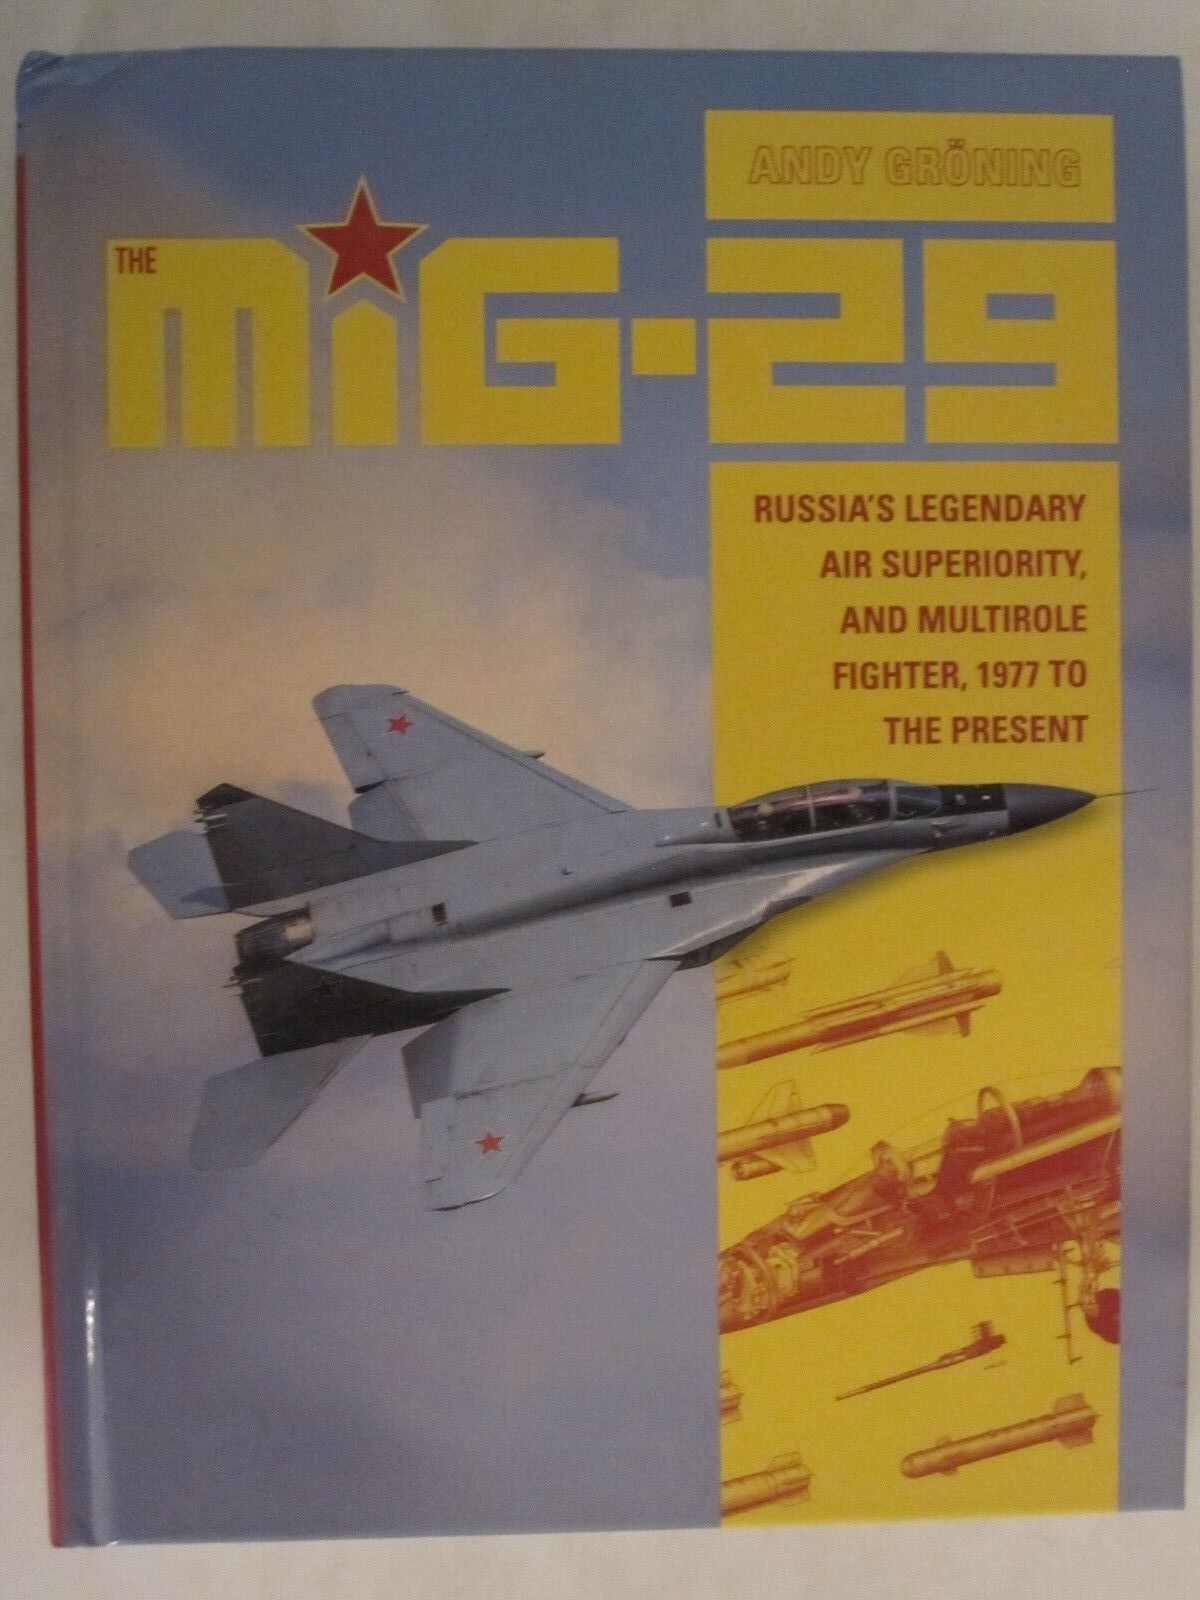 The MiG-29 : Russia's Legendary Air Superiority, and Multirole Fighter, 1977  to